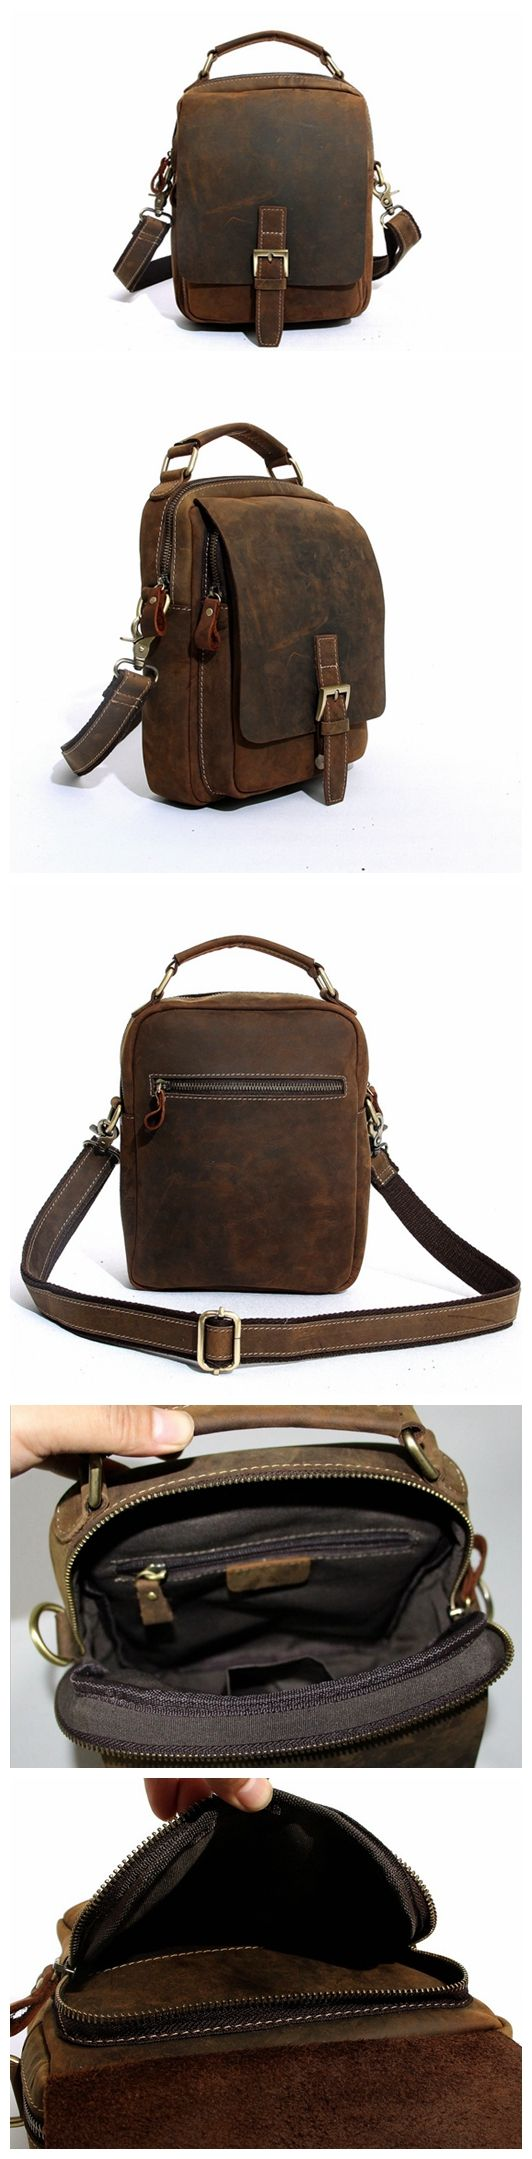 Handcrafted Vintage Crazy Horse Leather Messenger Bag, Shoulder Bag, Mens Satchel Handbag